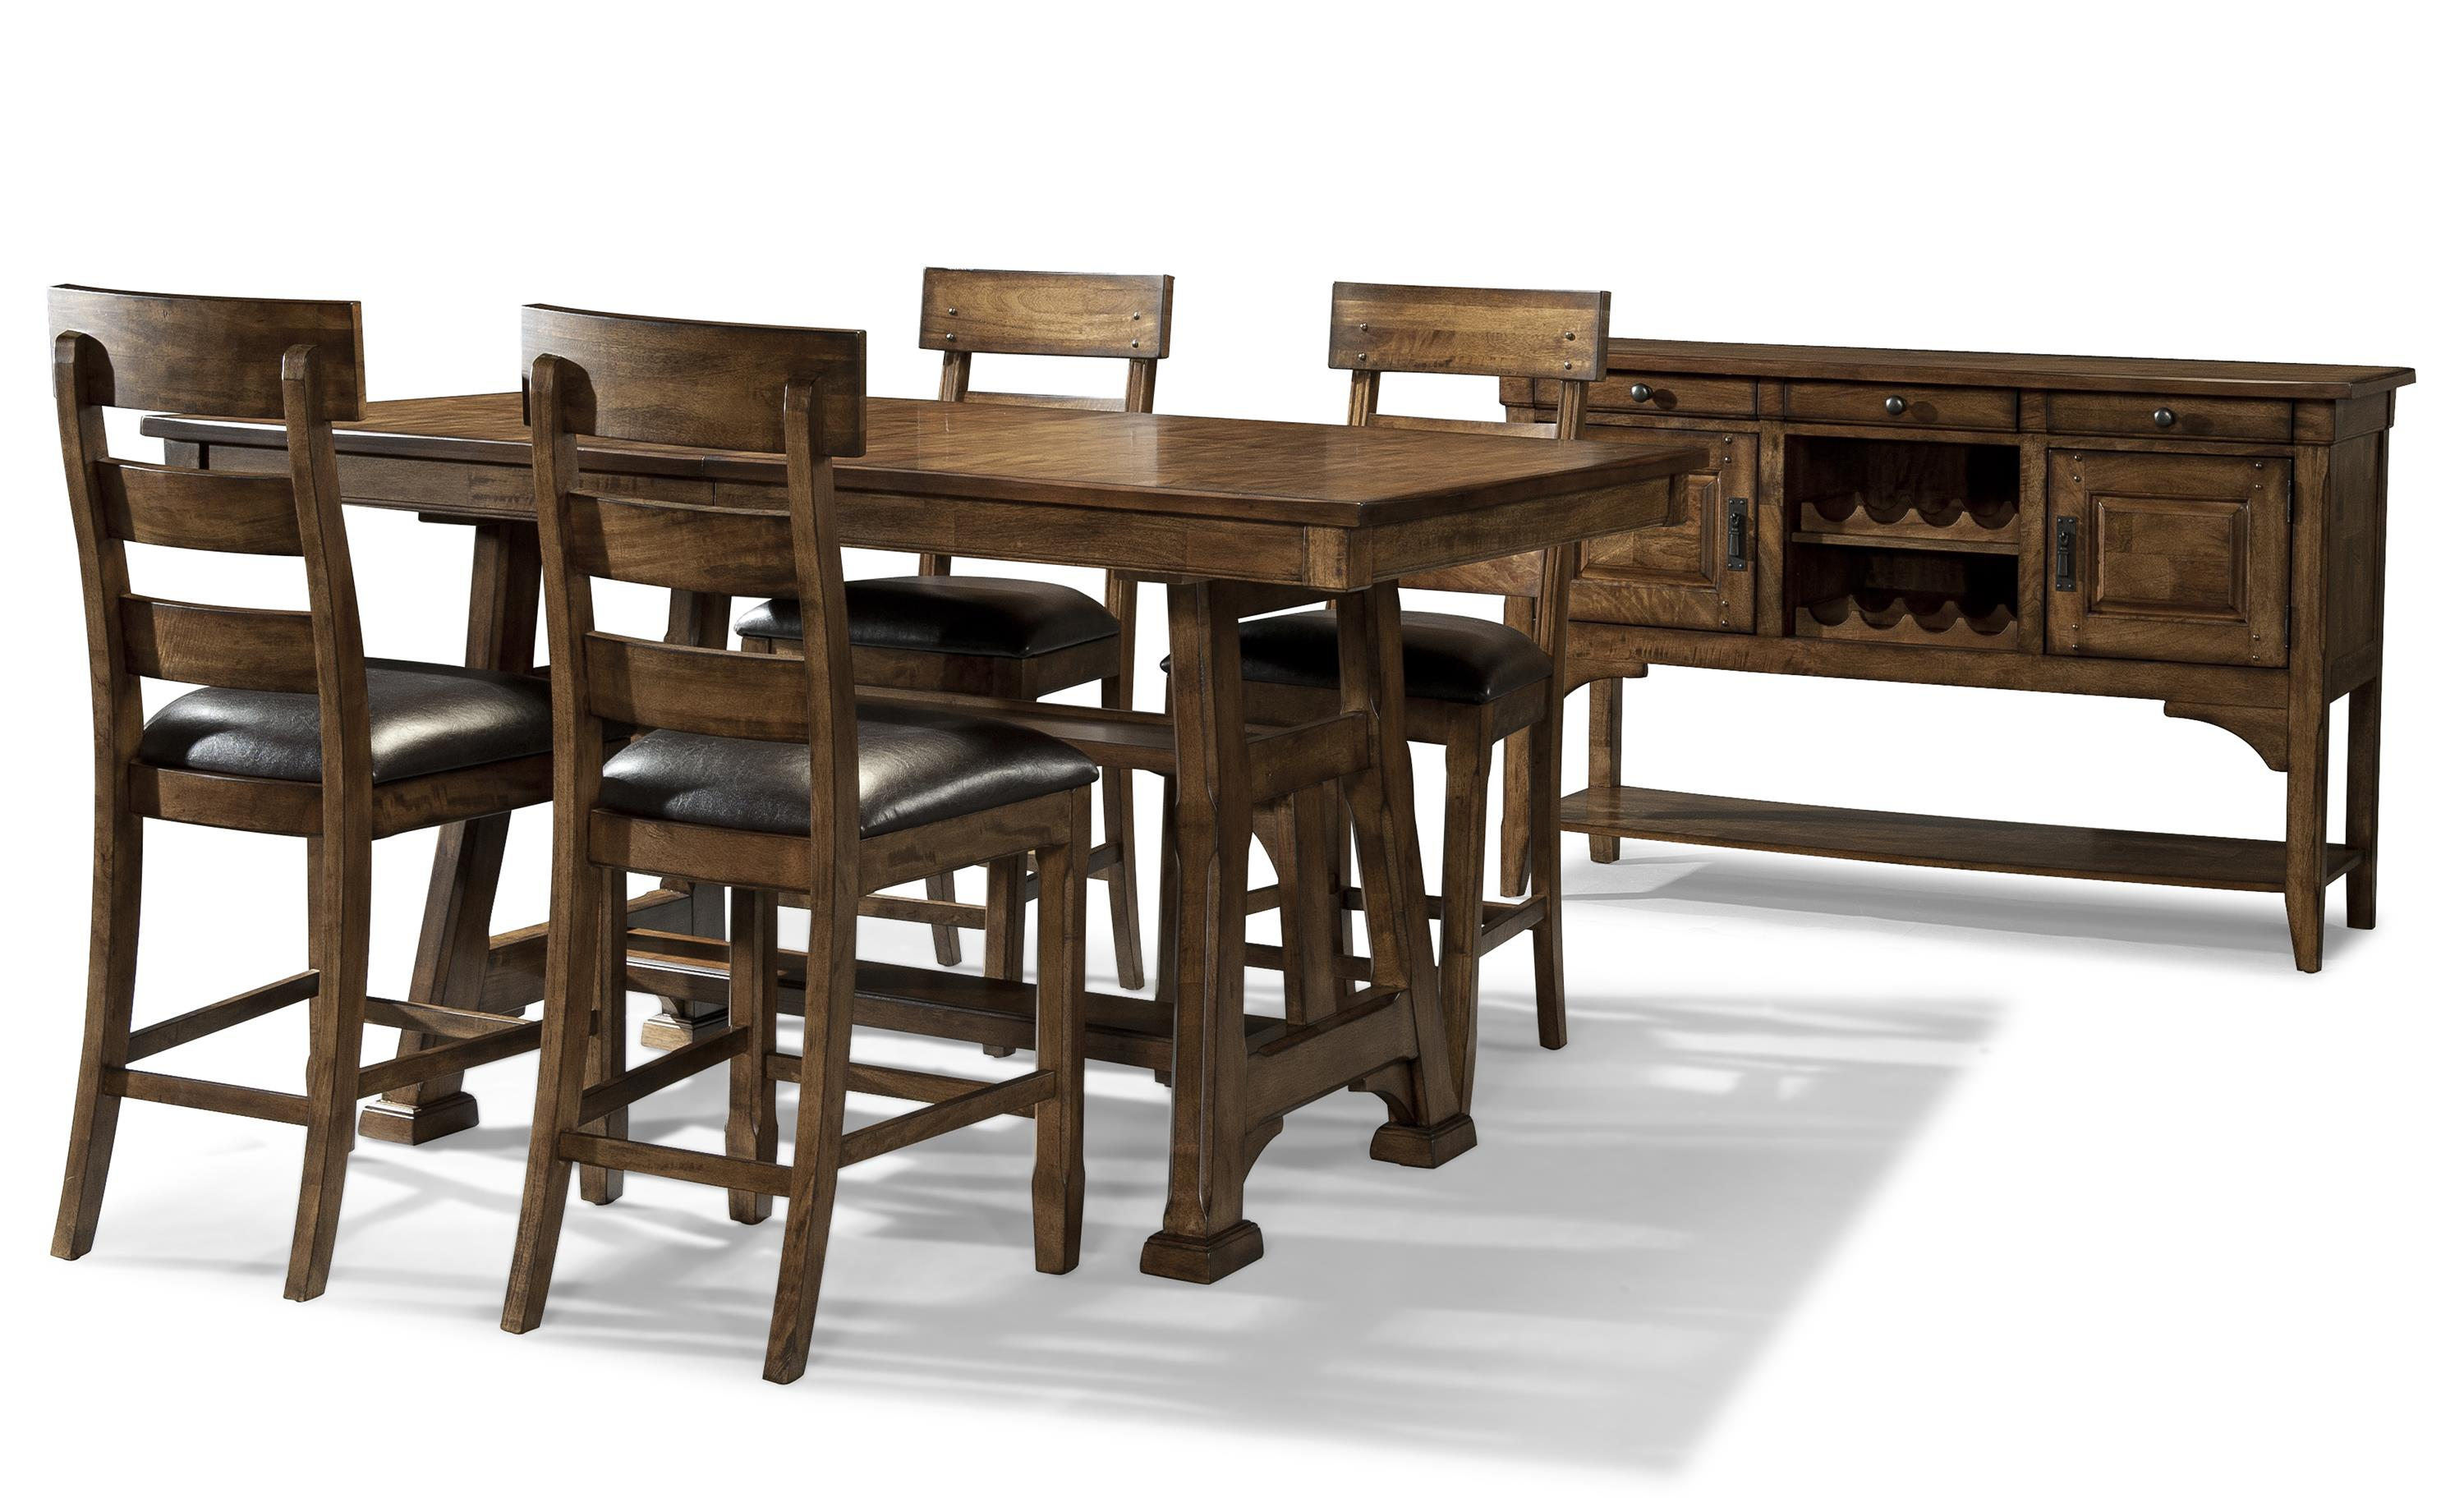 Ozark Casual Gathering Height Dining Room Group by AAmerica at Furniture Superstore - Rochester, MN